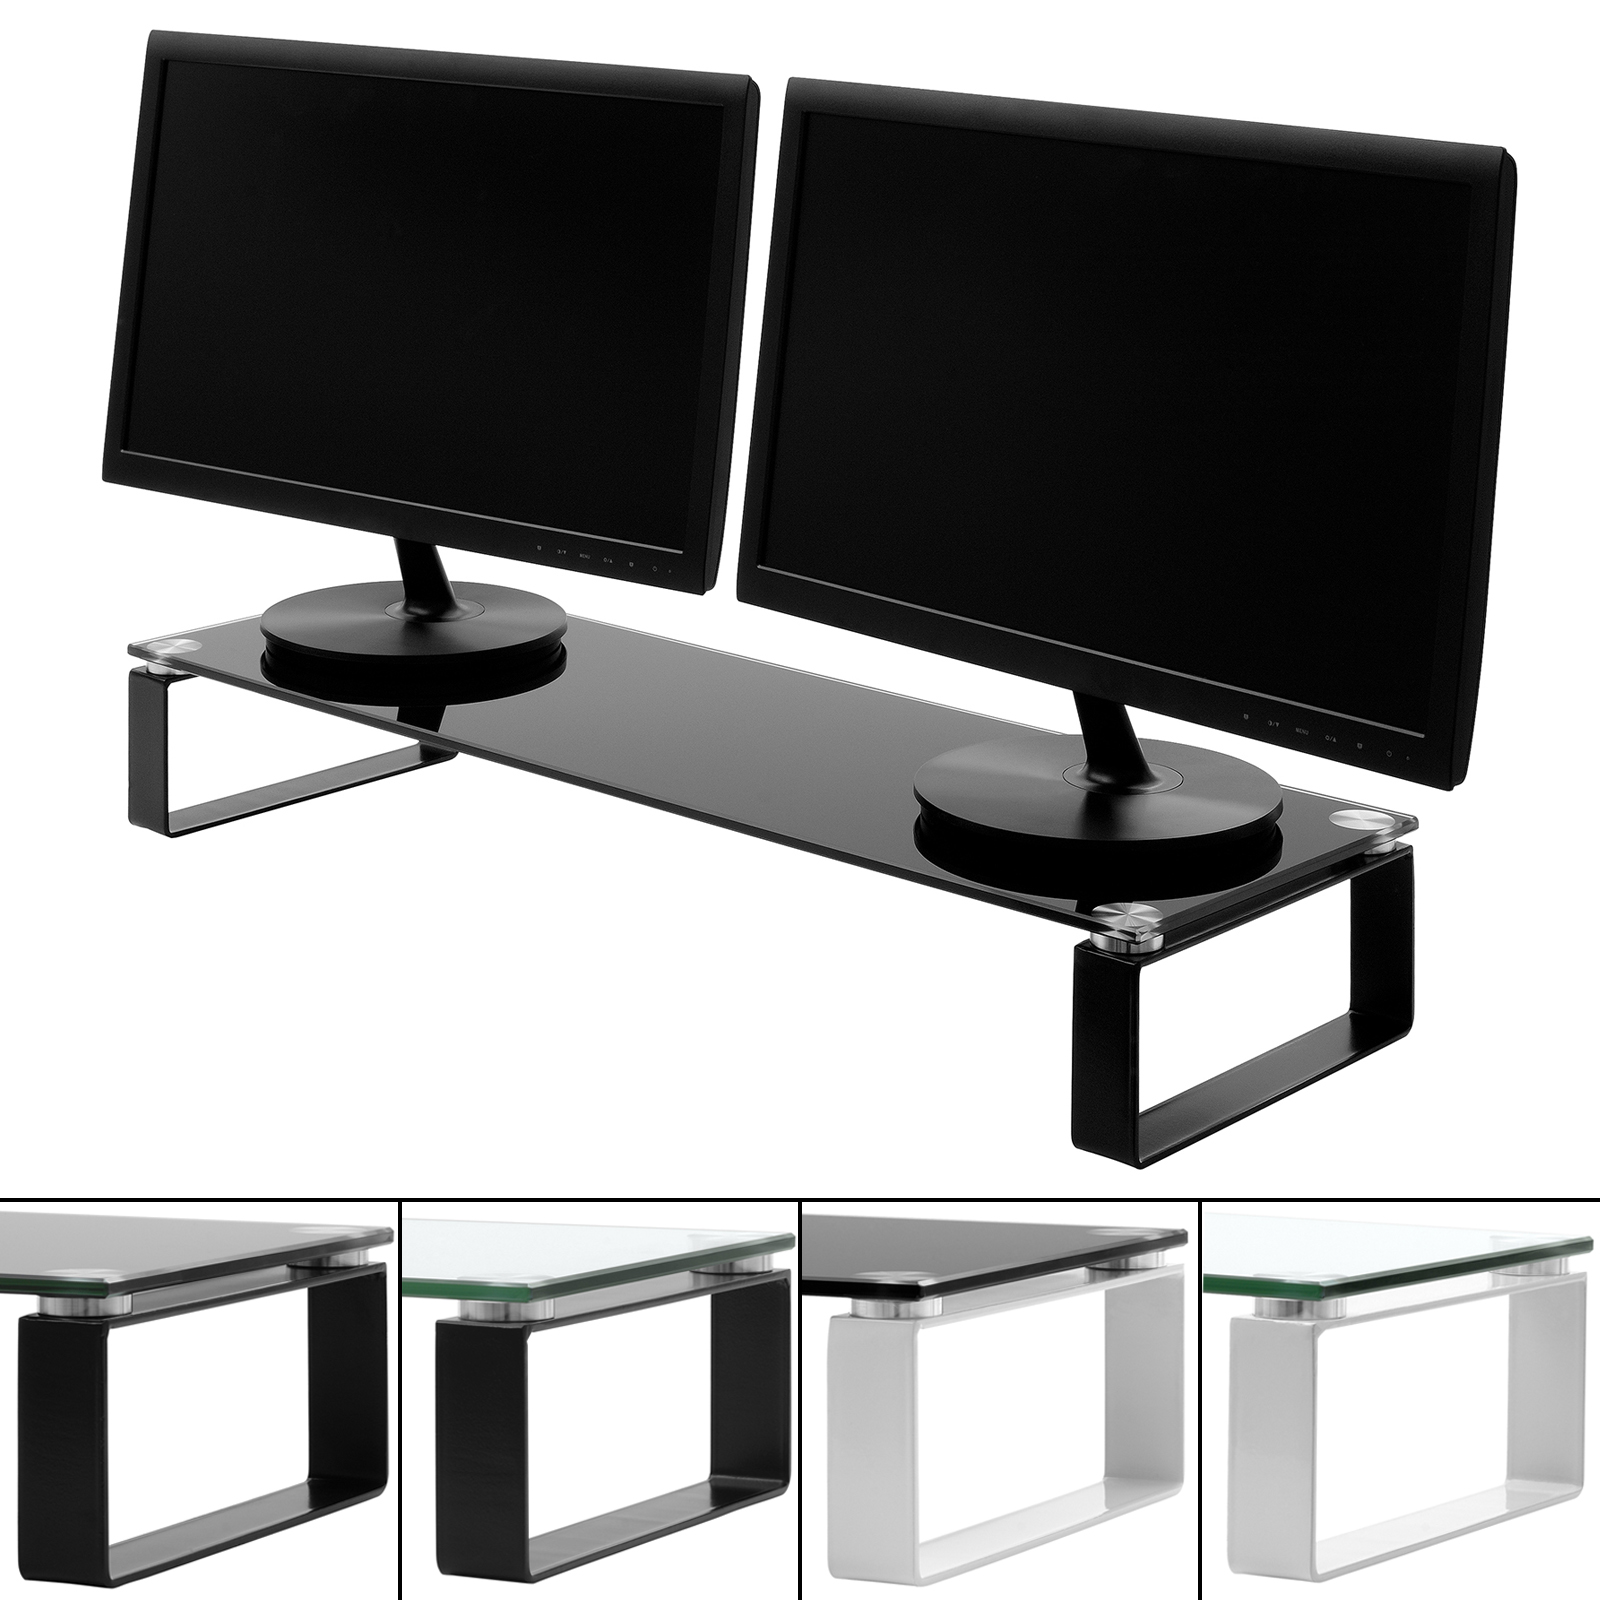 large double monitor screen riser block shelf computer imac tv stand ps4 xbox ebay. Black Bedroom Furniture Sets. Home Design Ideas